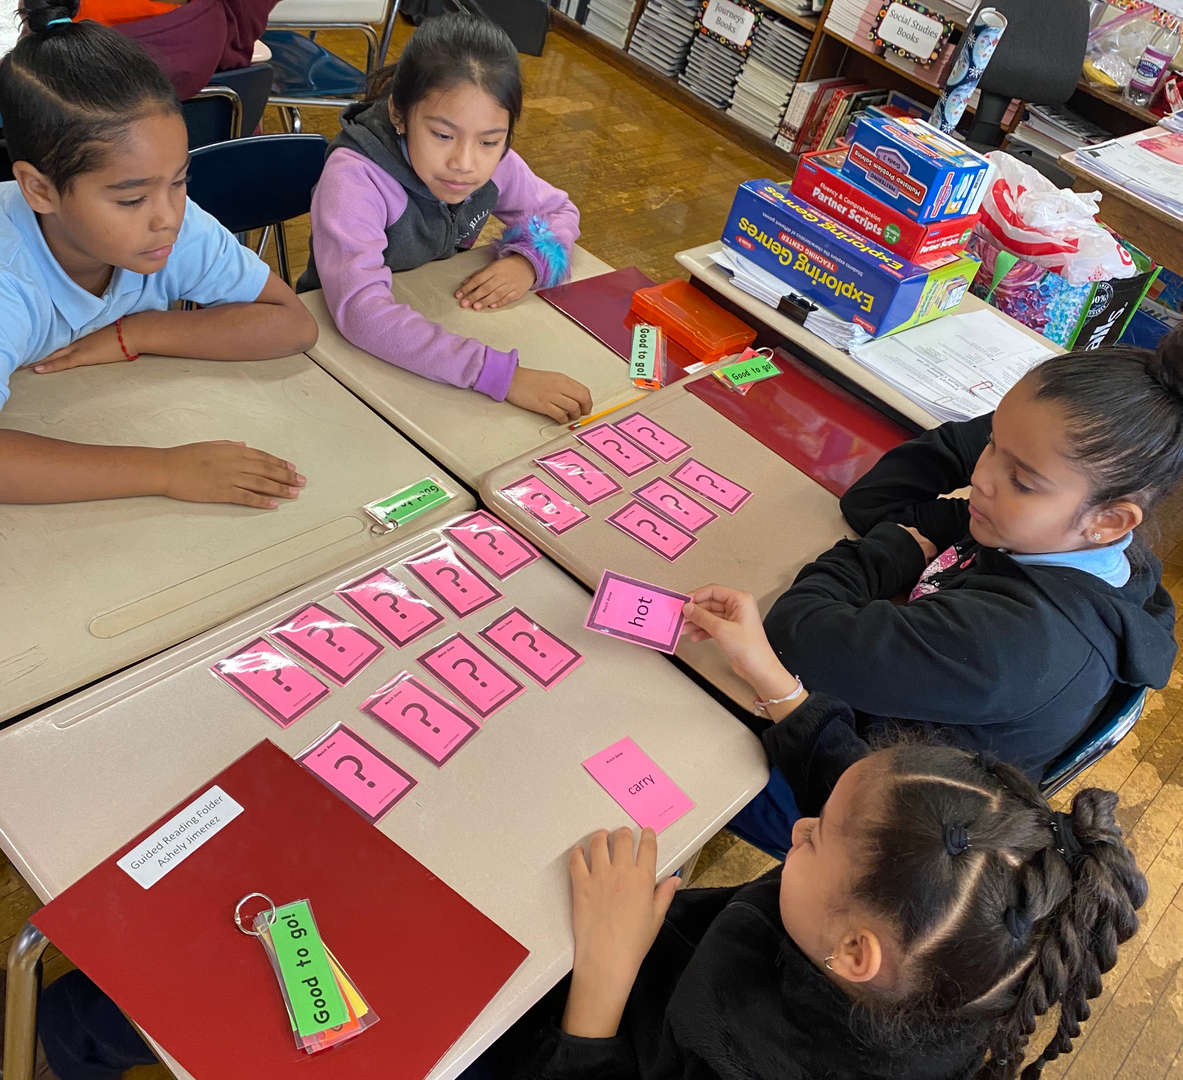 Students participate in guided reading